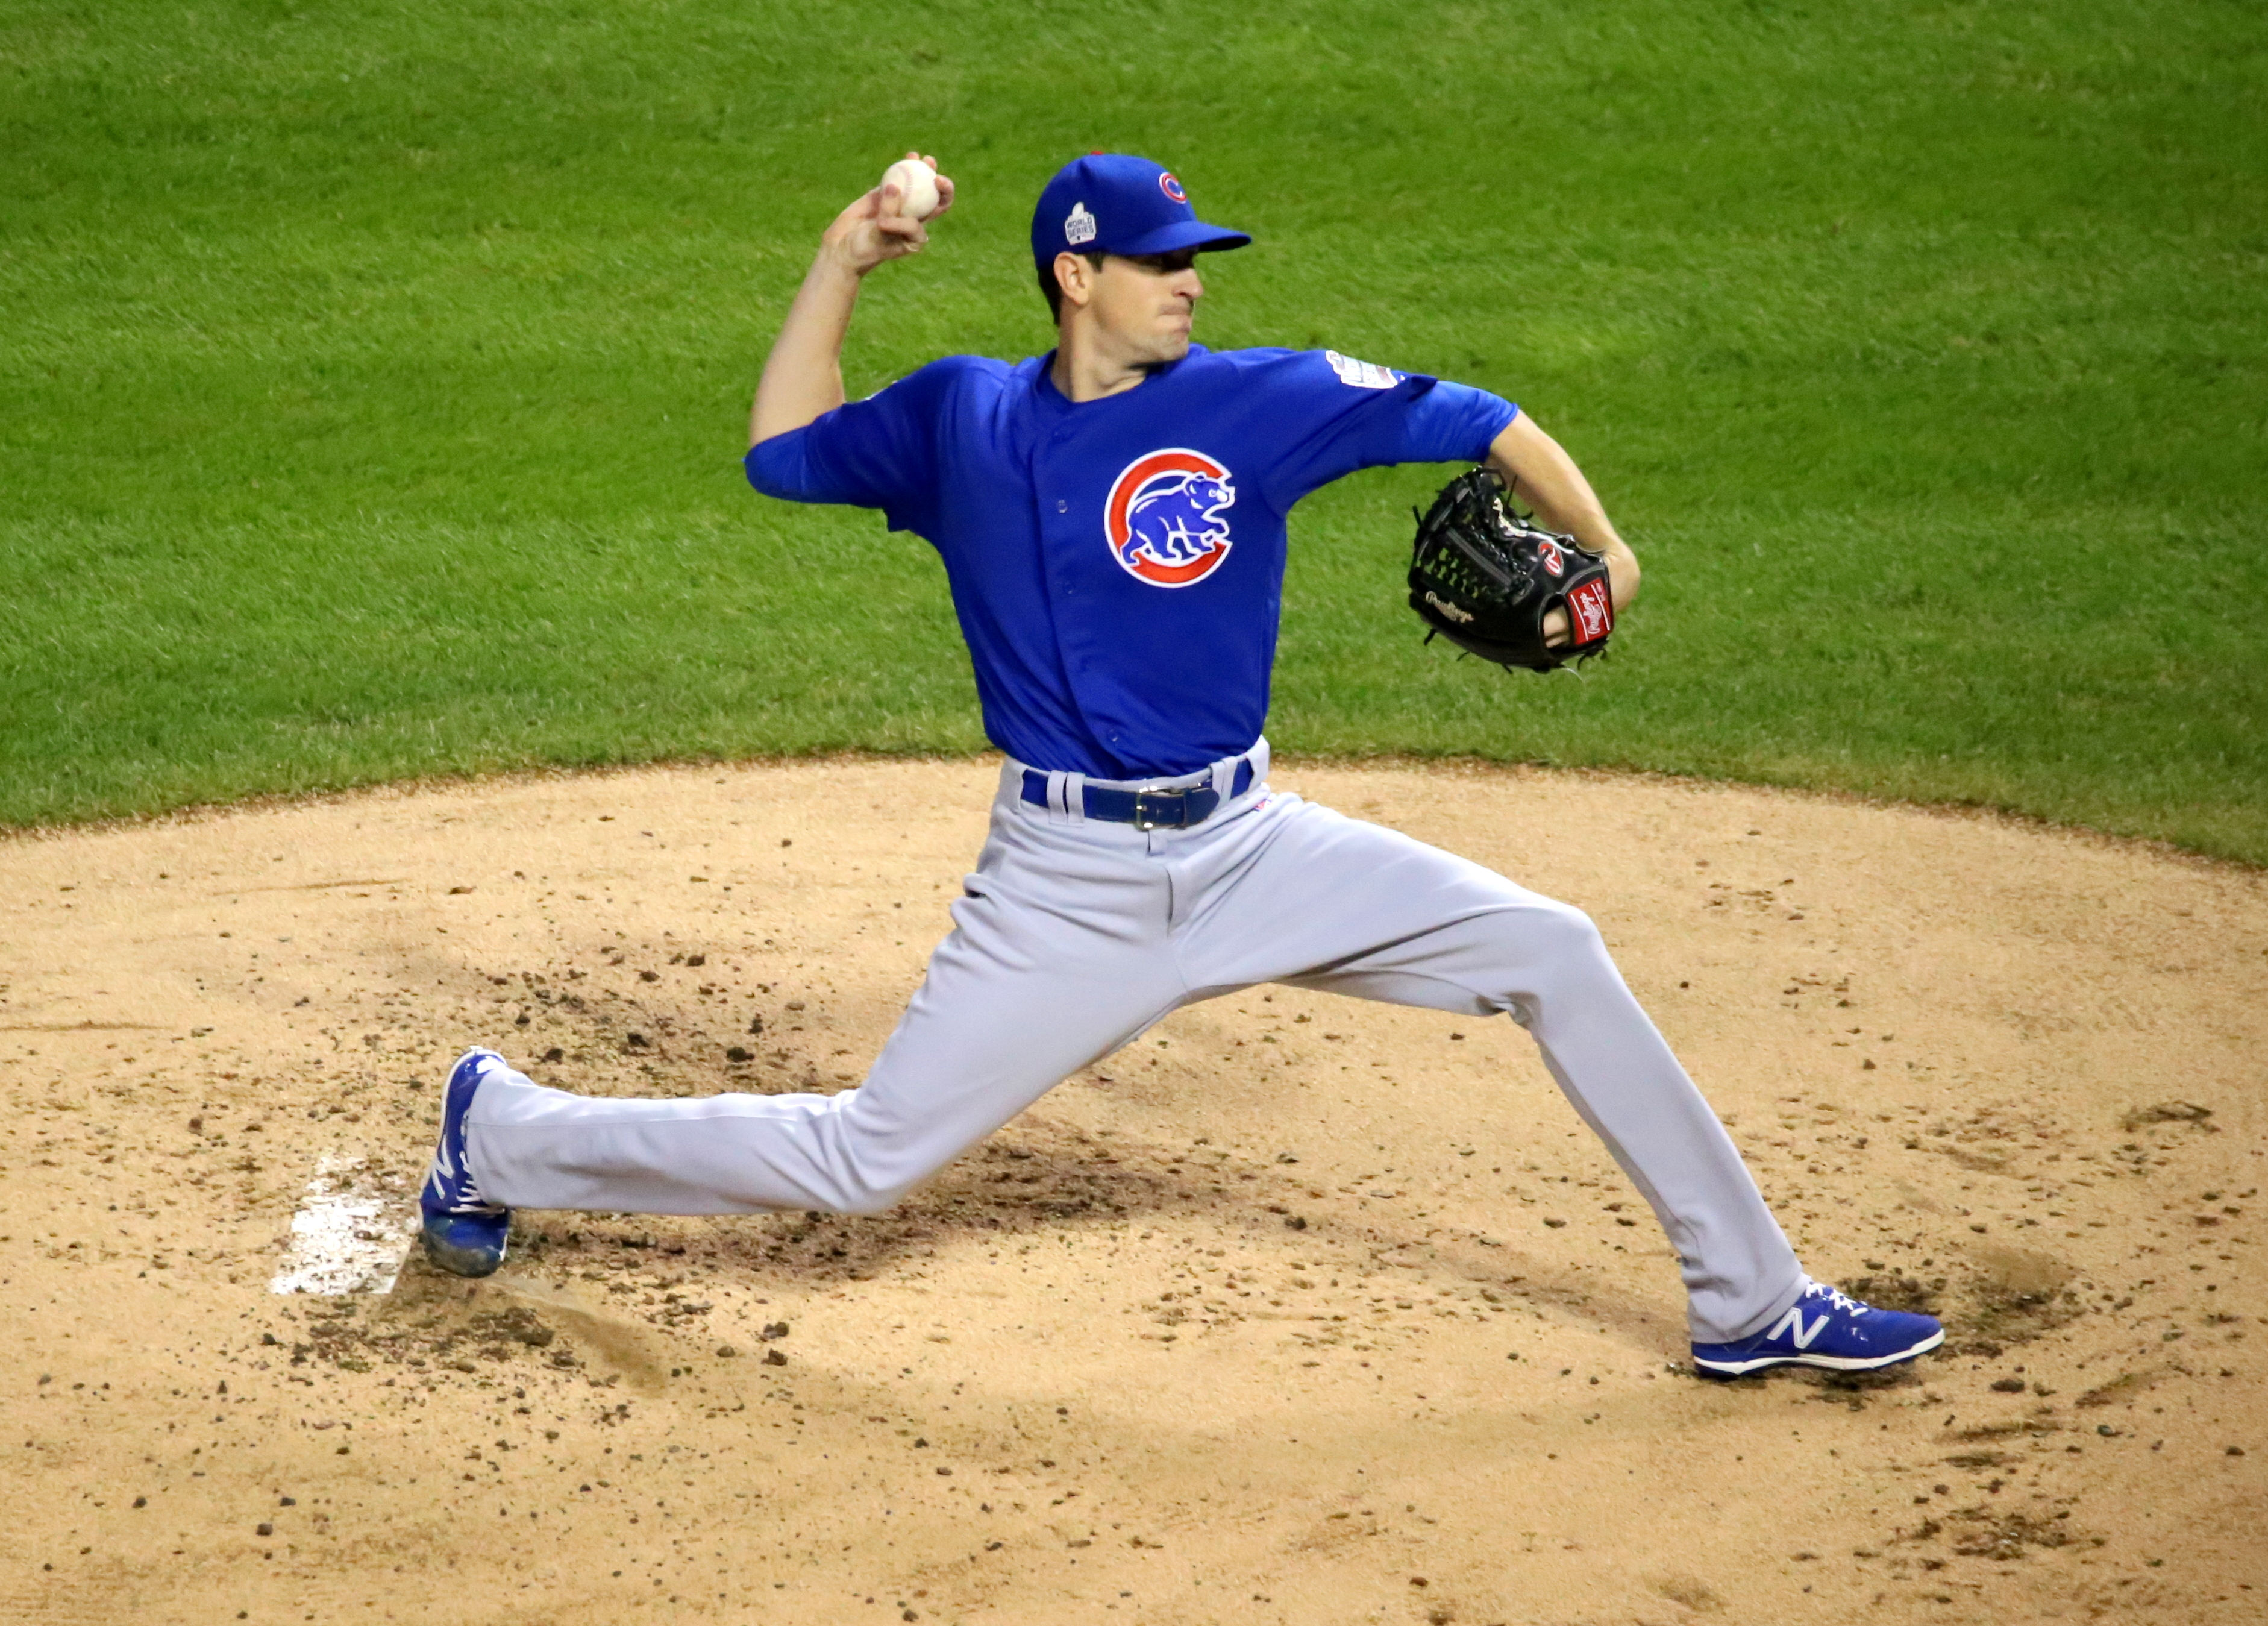 August 16, 2019 -- The Cubs are predicted to beat the Pirates on the road. The Cubs projected starting pitcher is Kyle Hendricks and top hitter is Javier Baez.